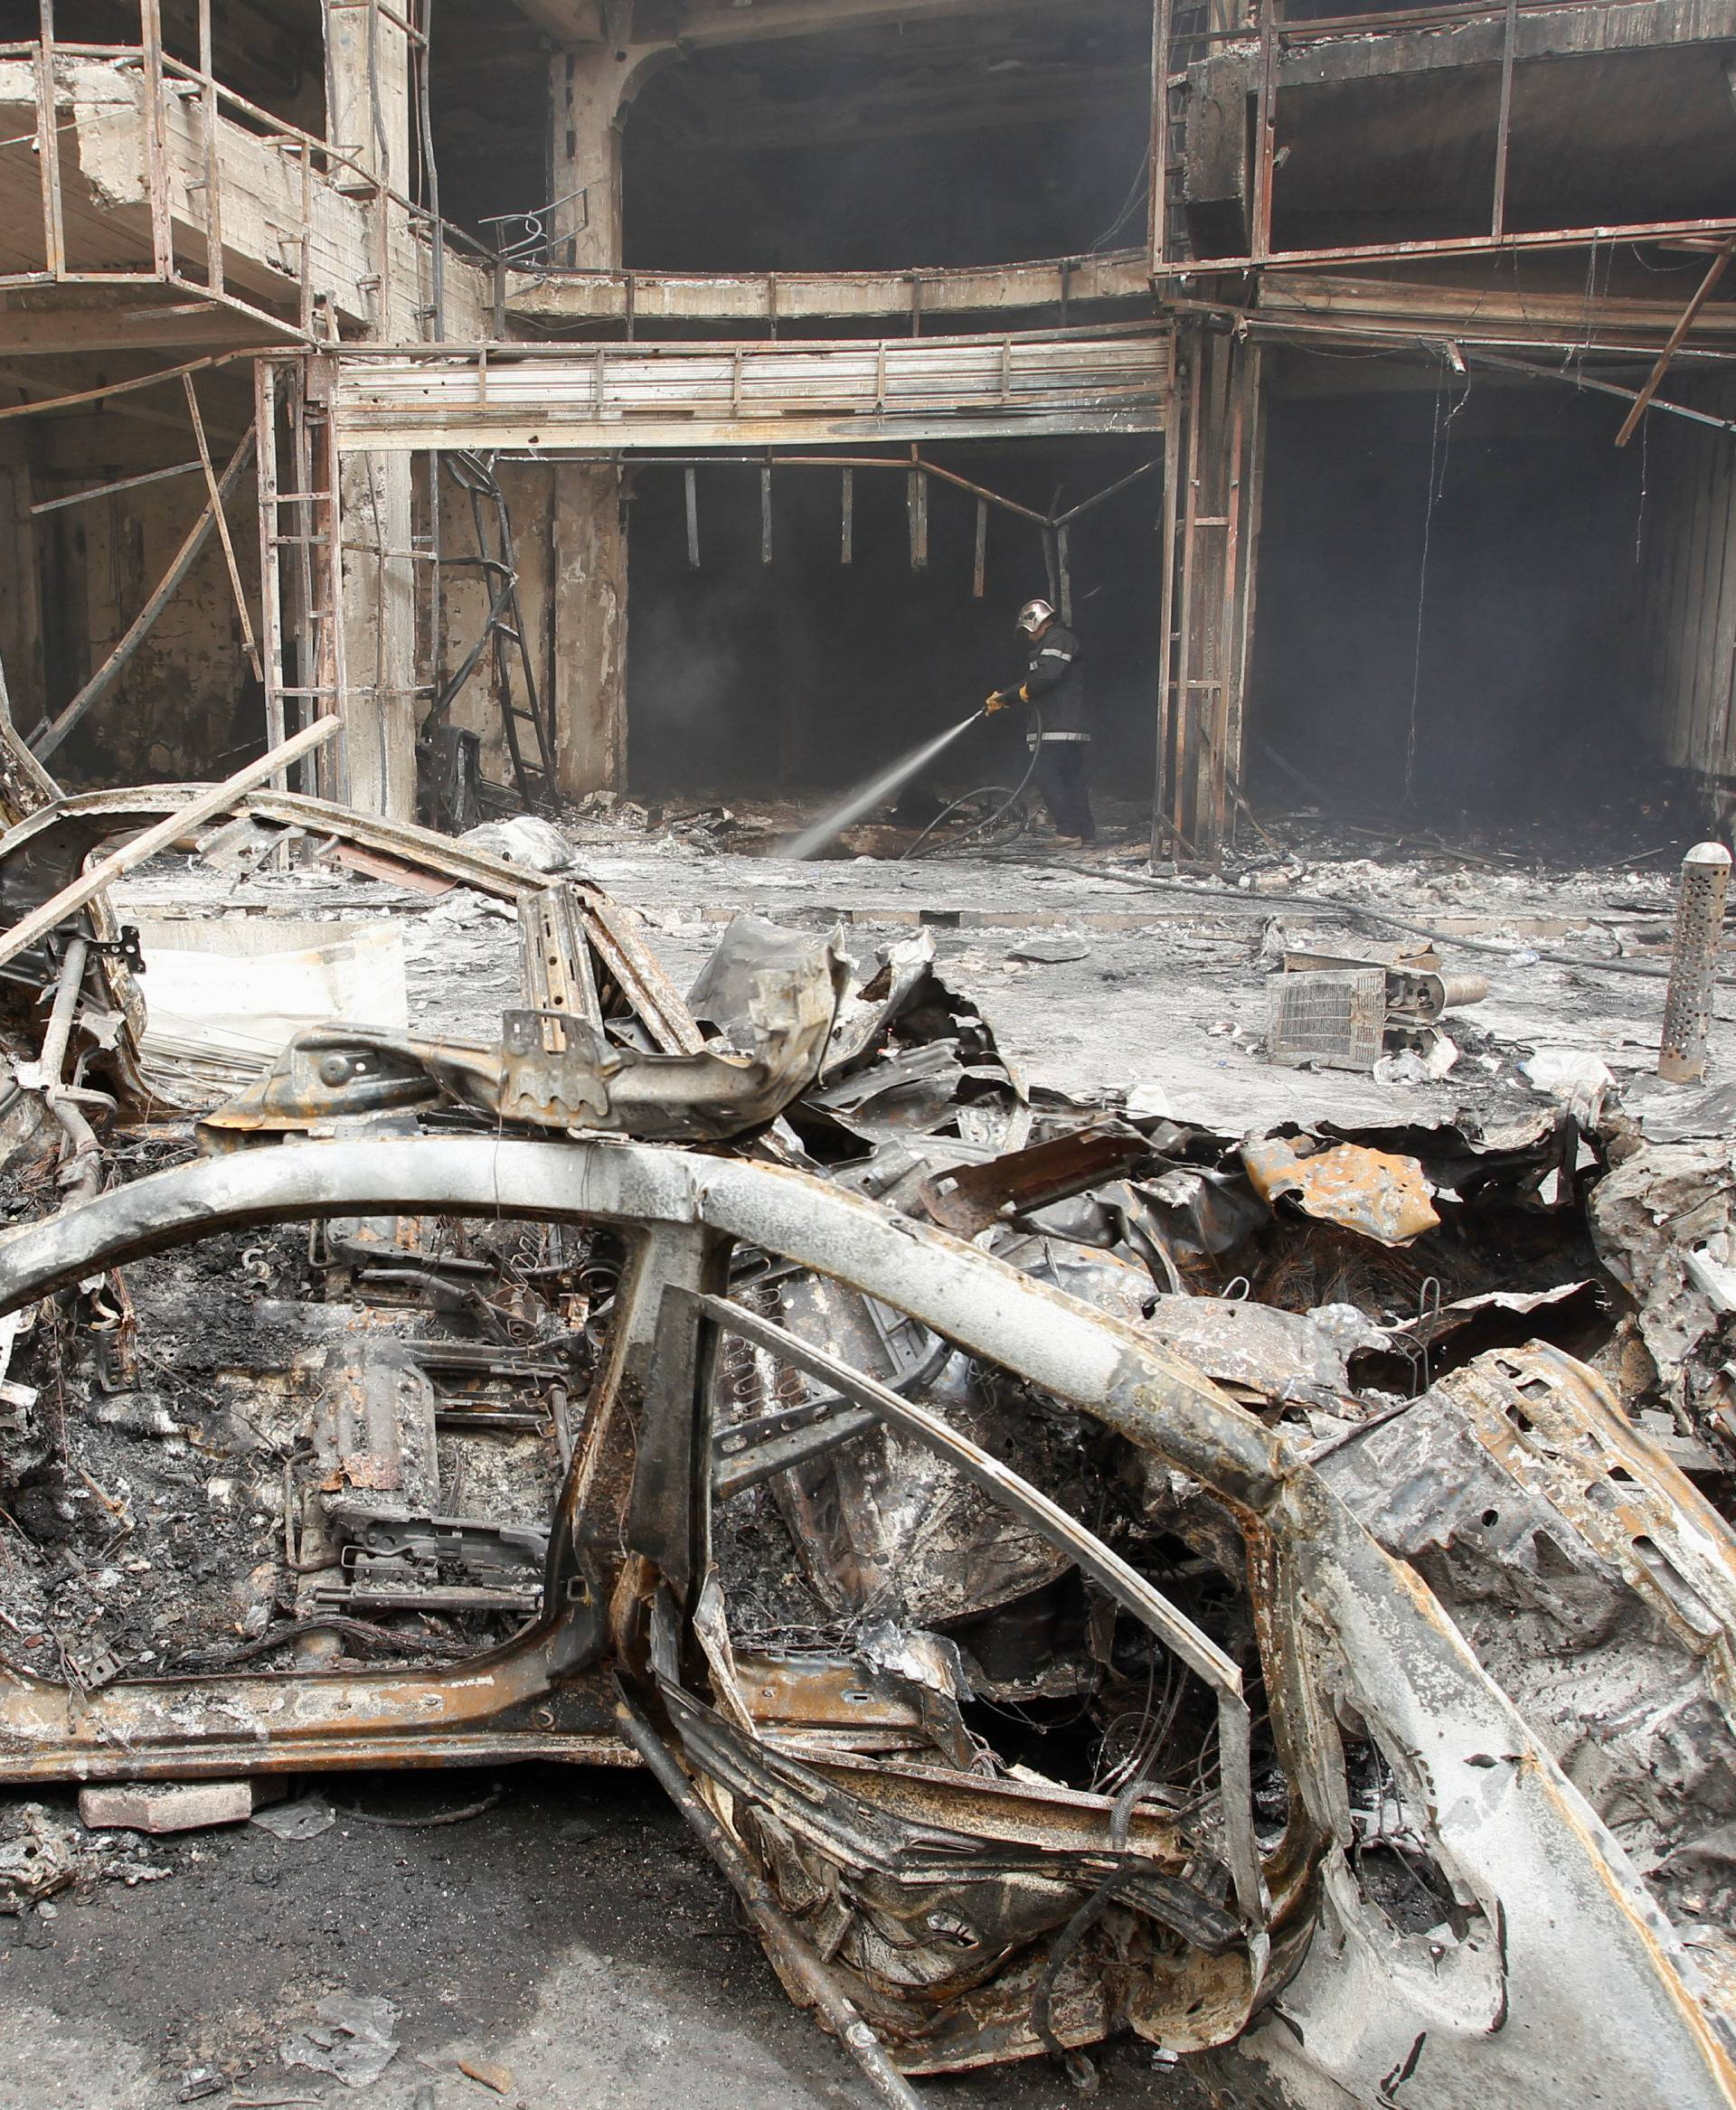 A fireman hoses down a burning building after a suicide car bomb occurred in the Karrada shopping area in Baghdad, Iraq